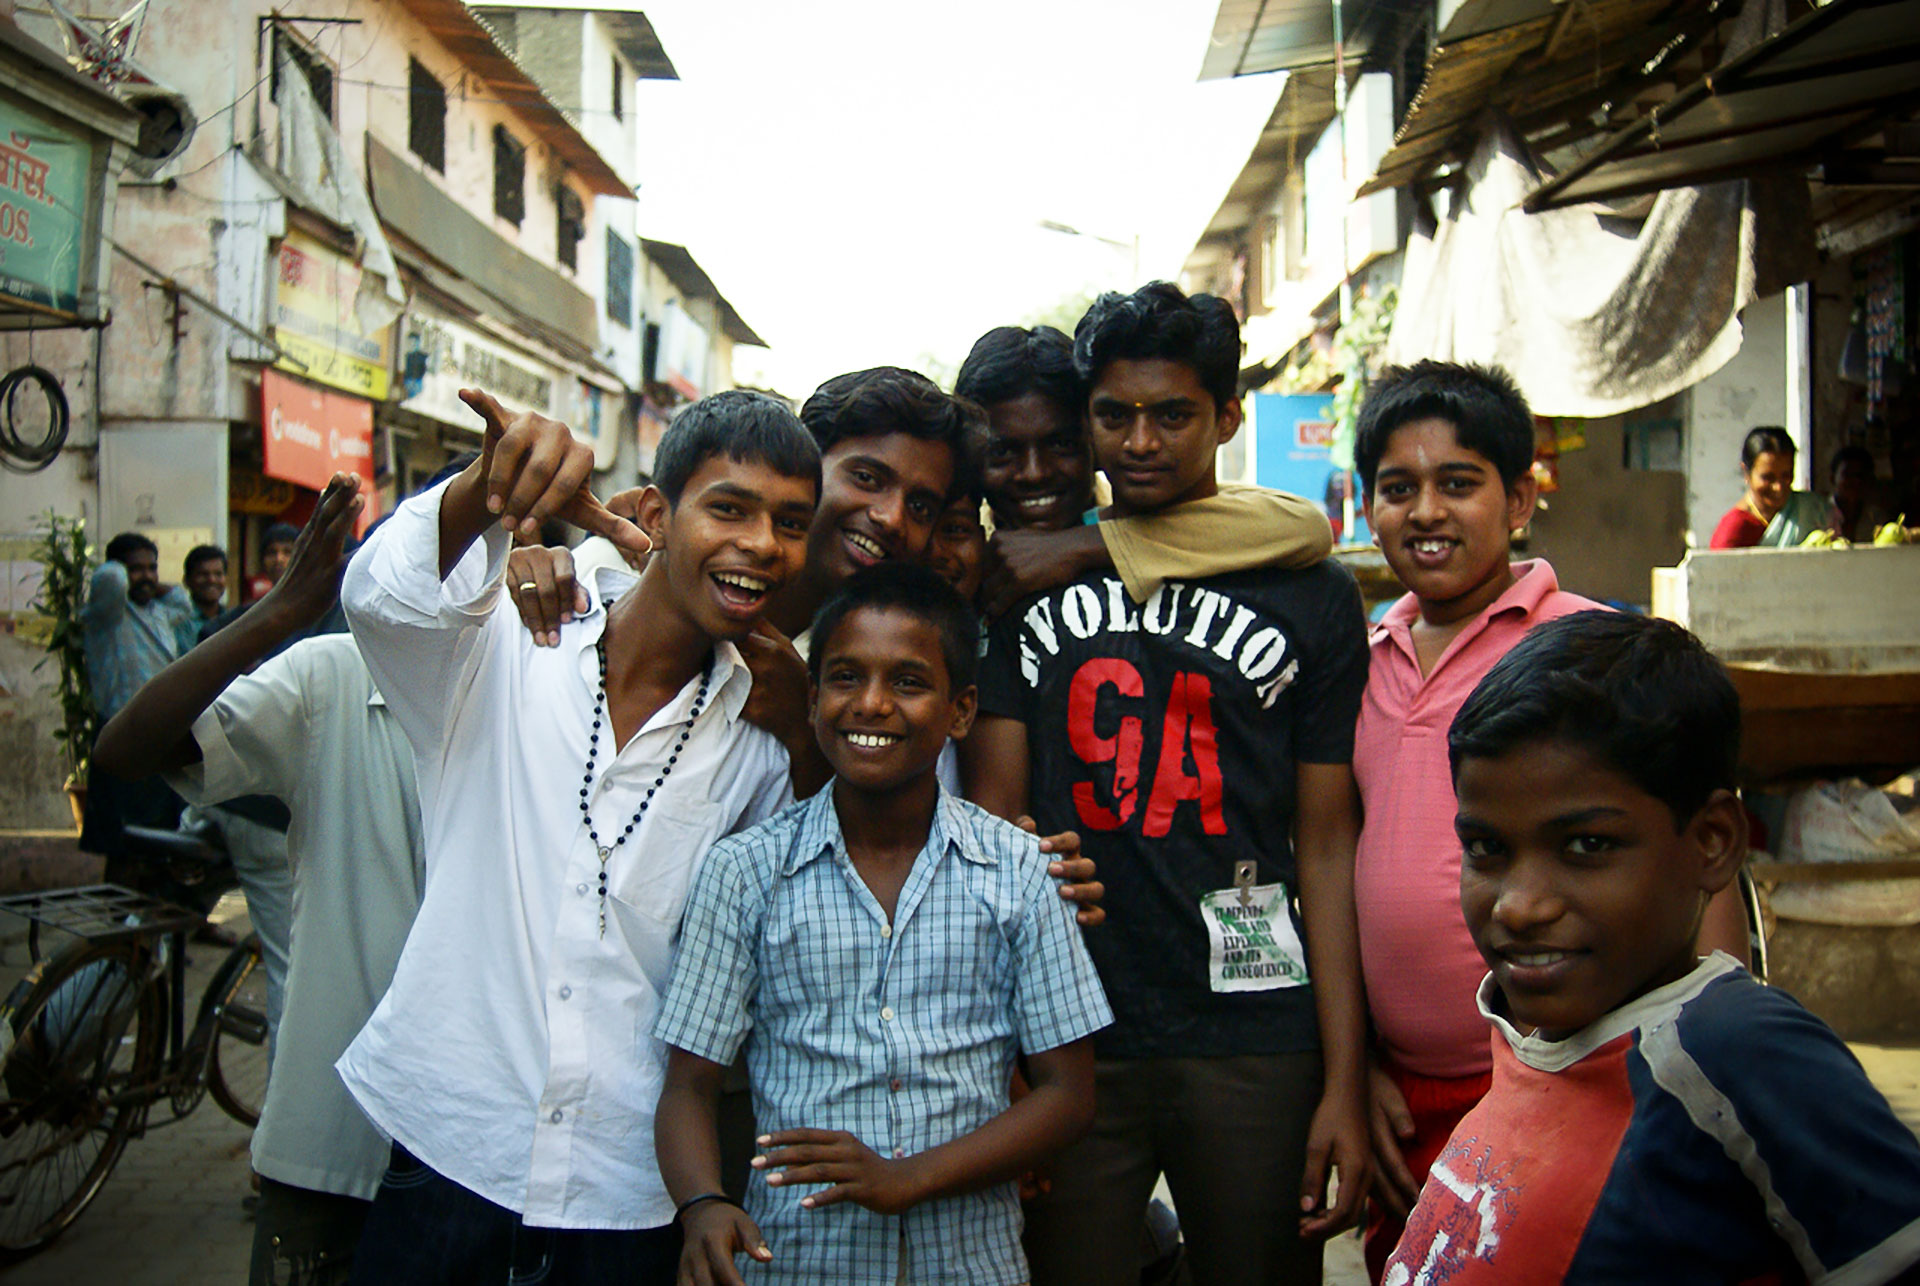 A group of Indian children in the street.